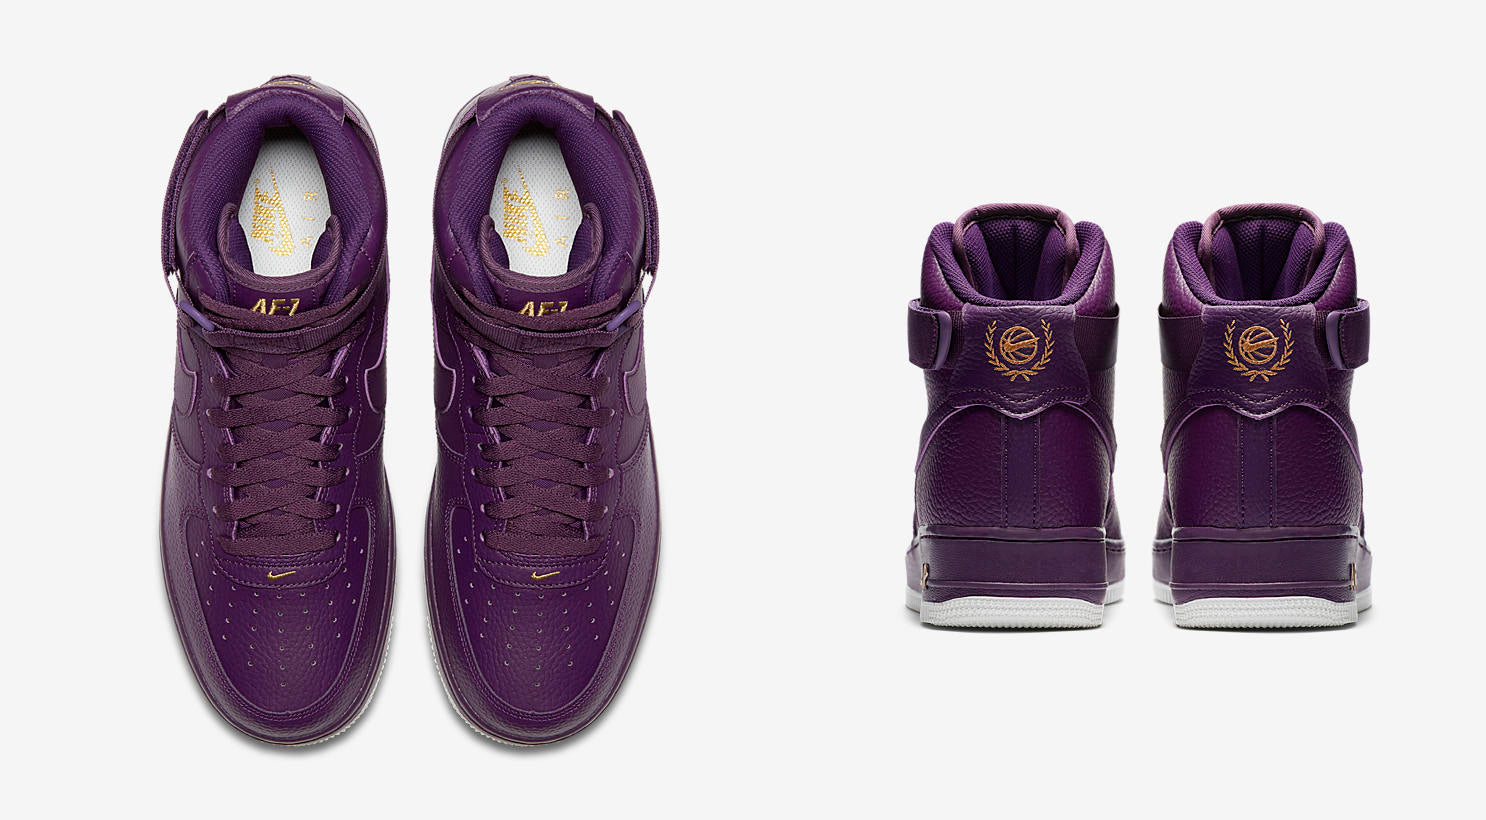 f16f8319dc9 Nike Air Force 1 High 07 315121-500. NIGHT PURPLE NIGHT PURPLE-SUMMIT WHITE  Price  £99.00. Launch  Wednesday 30th May ONLINE  17 00BST